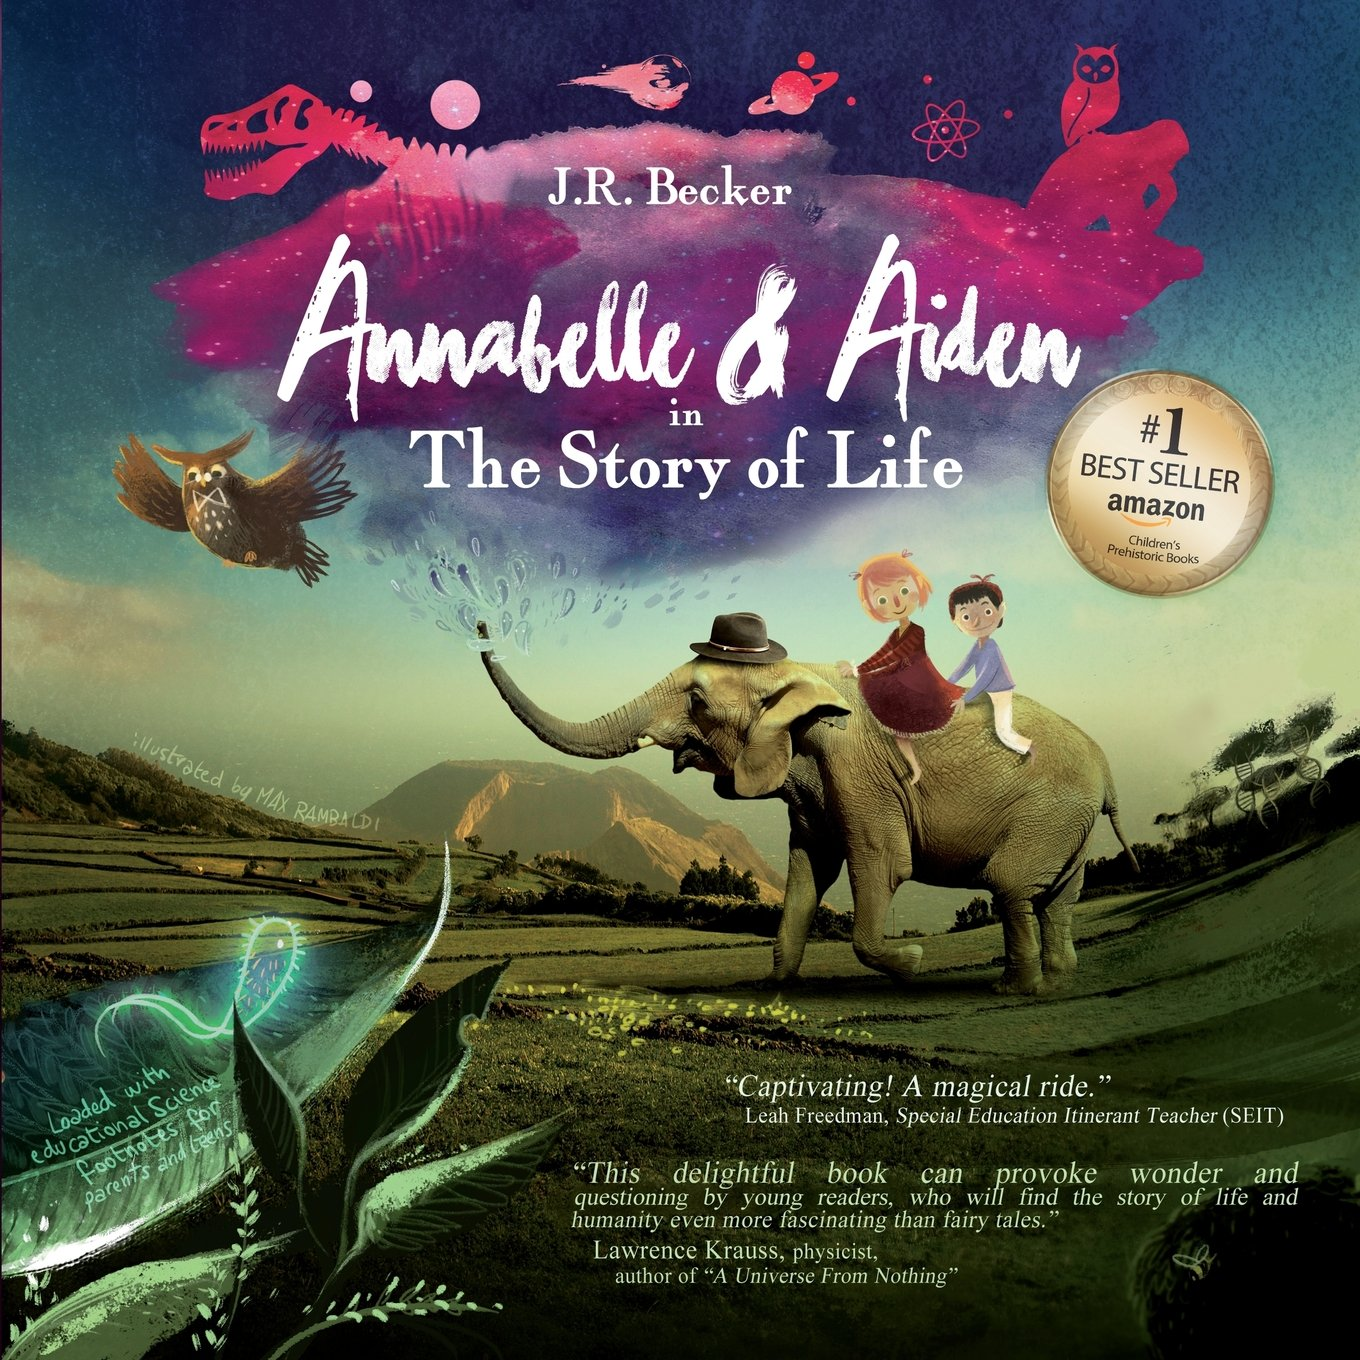 Annabelle & Aiden: The Story of Life